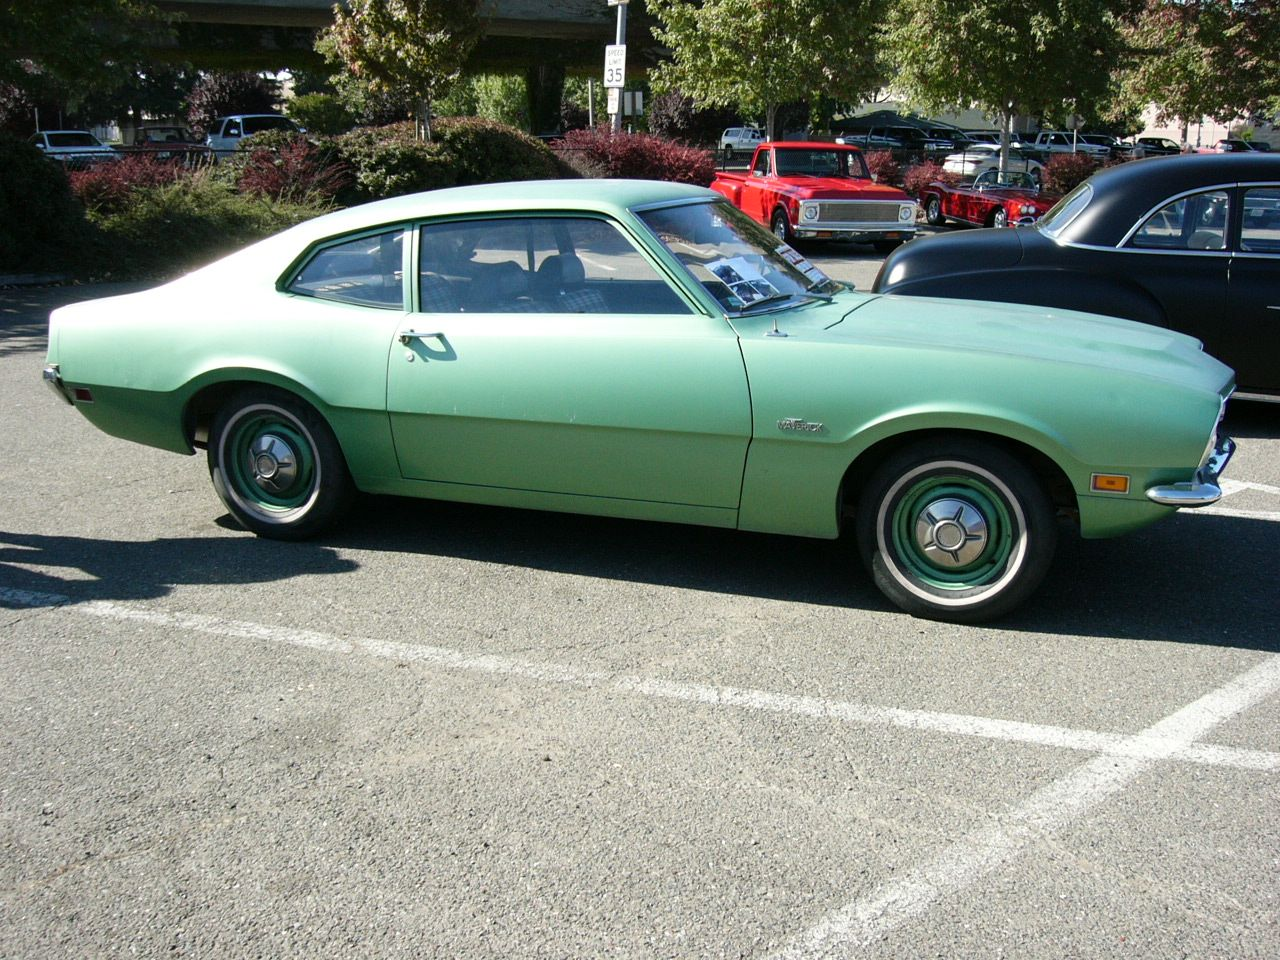 Ford maverick 1970 ford maverick the simple machine by roadtripdog on deviantart